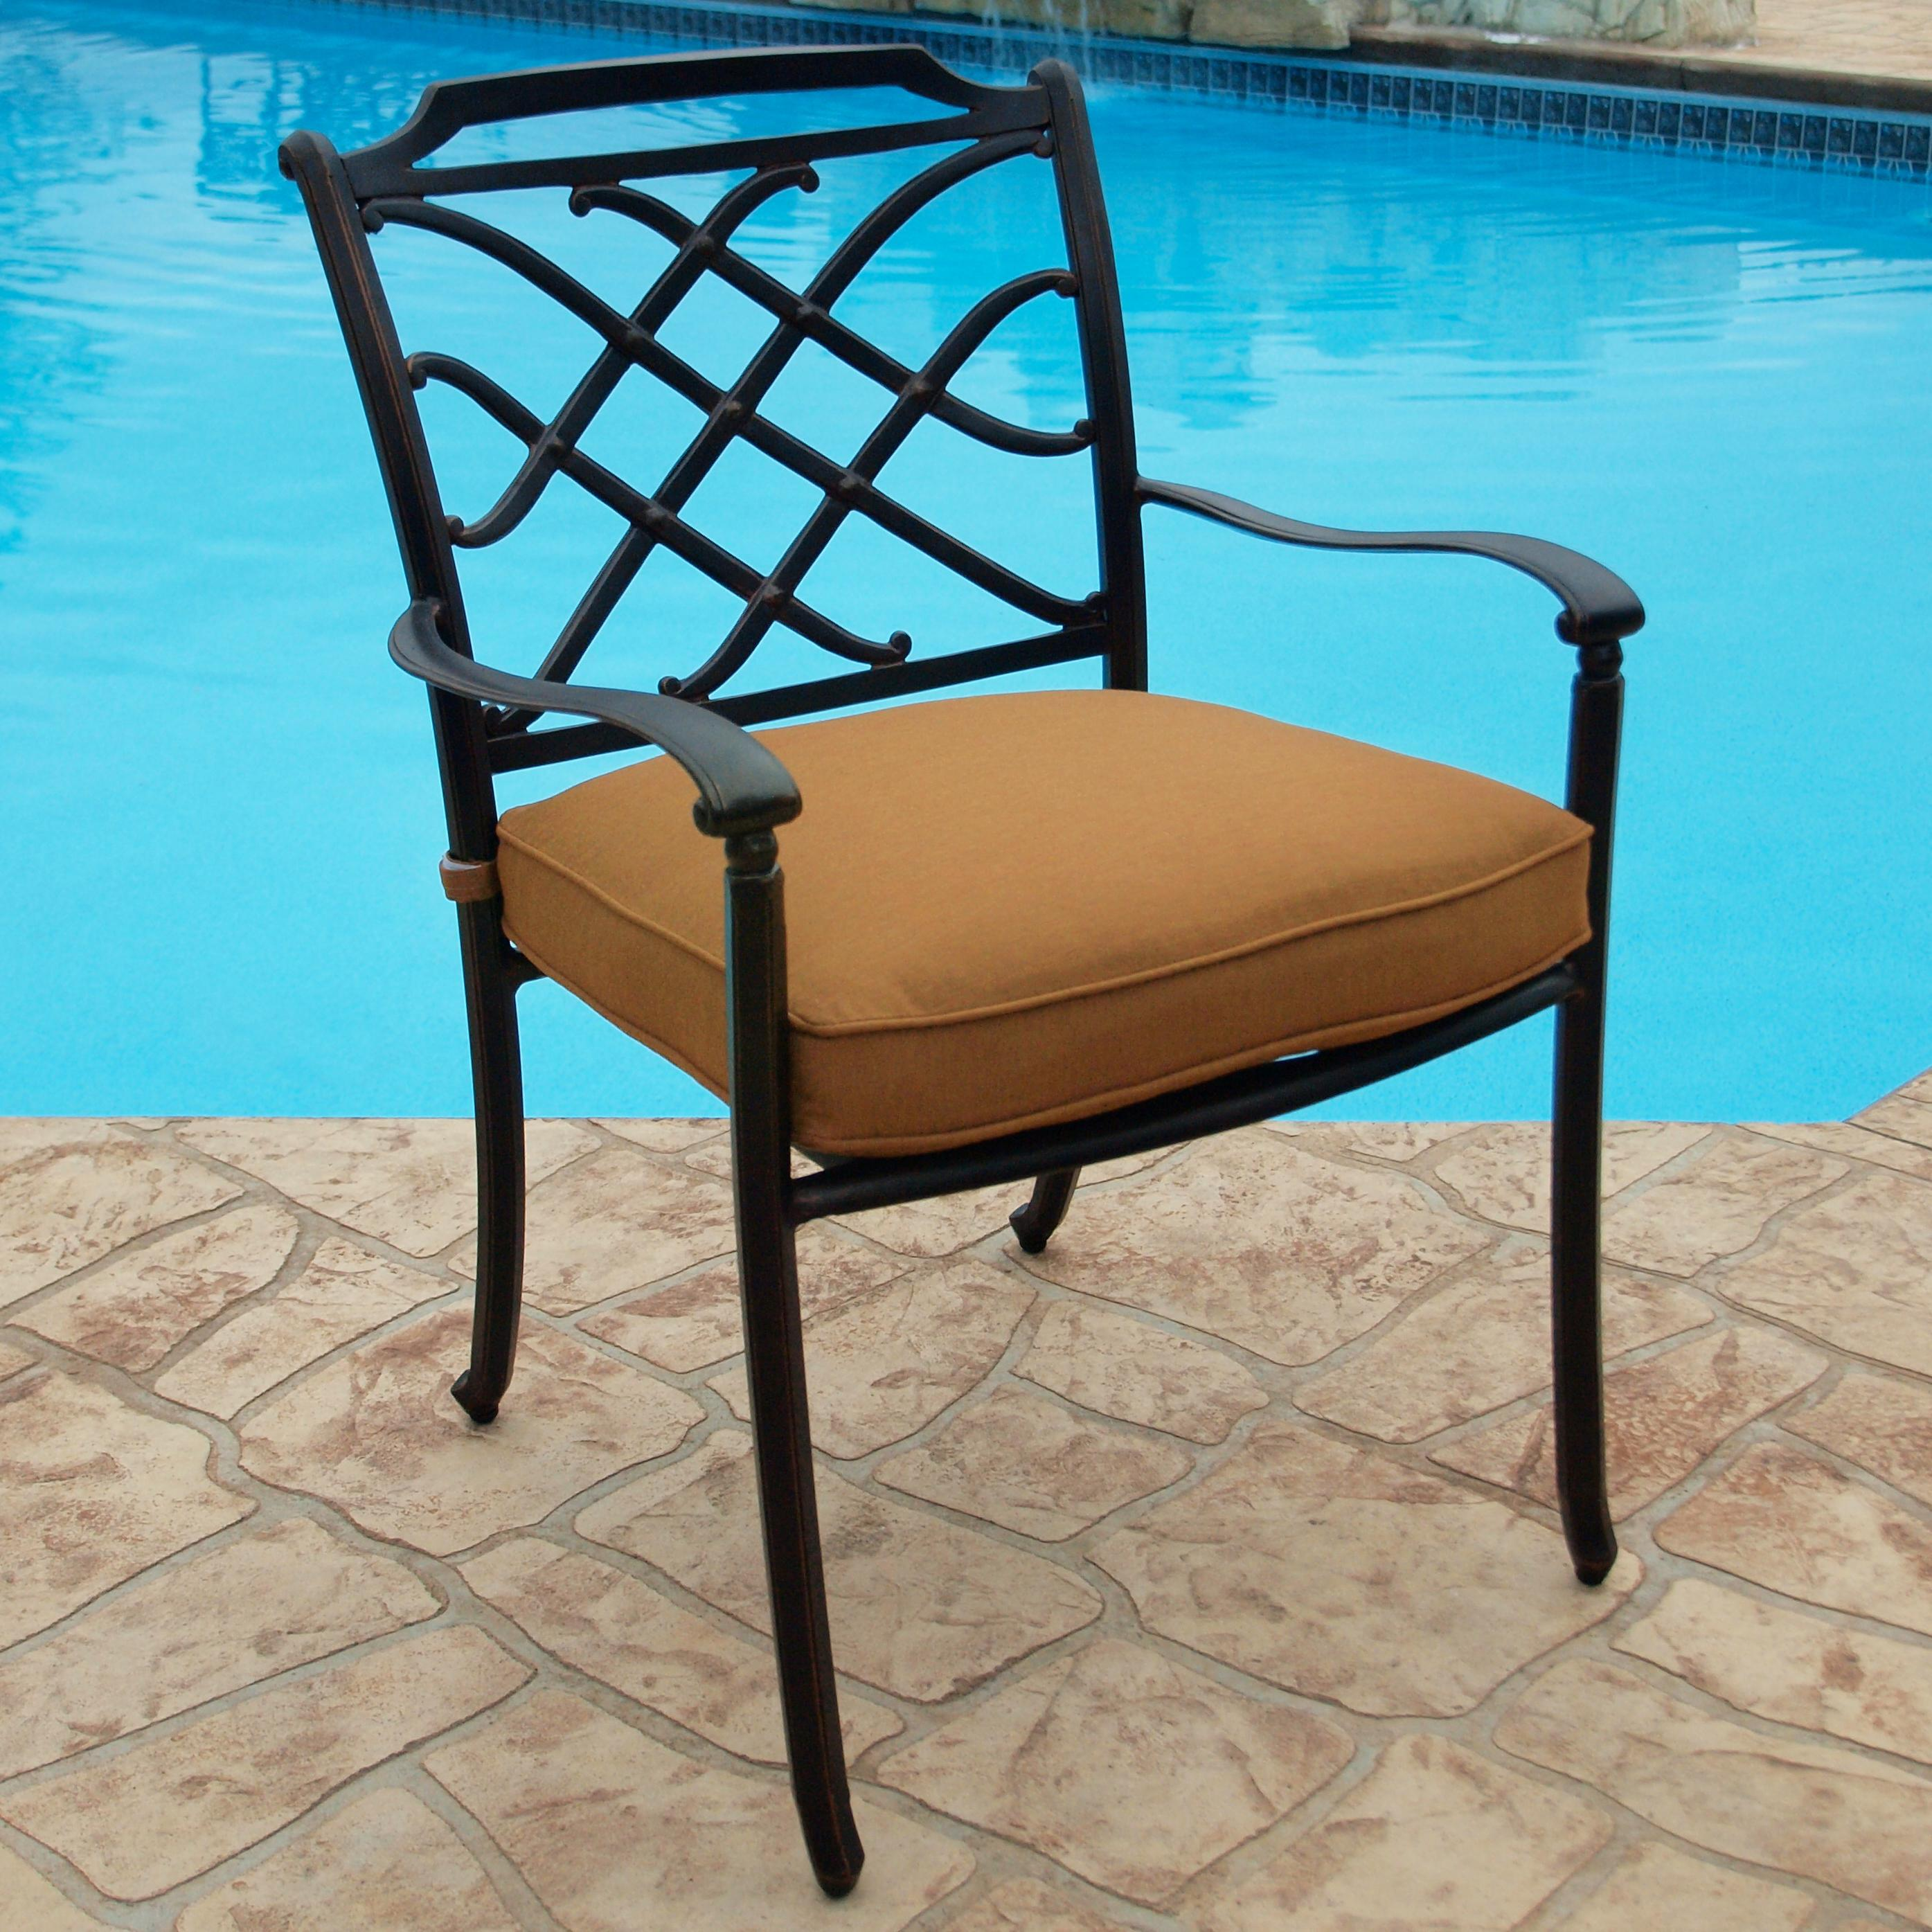 Agio Willowbrook Patio Furniture.Agio Willowbrook Transitional Alumicast Outdoor Dining Arm Chair